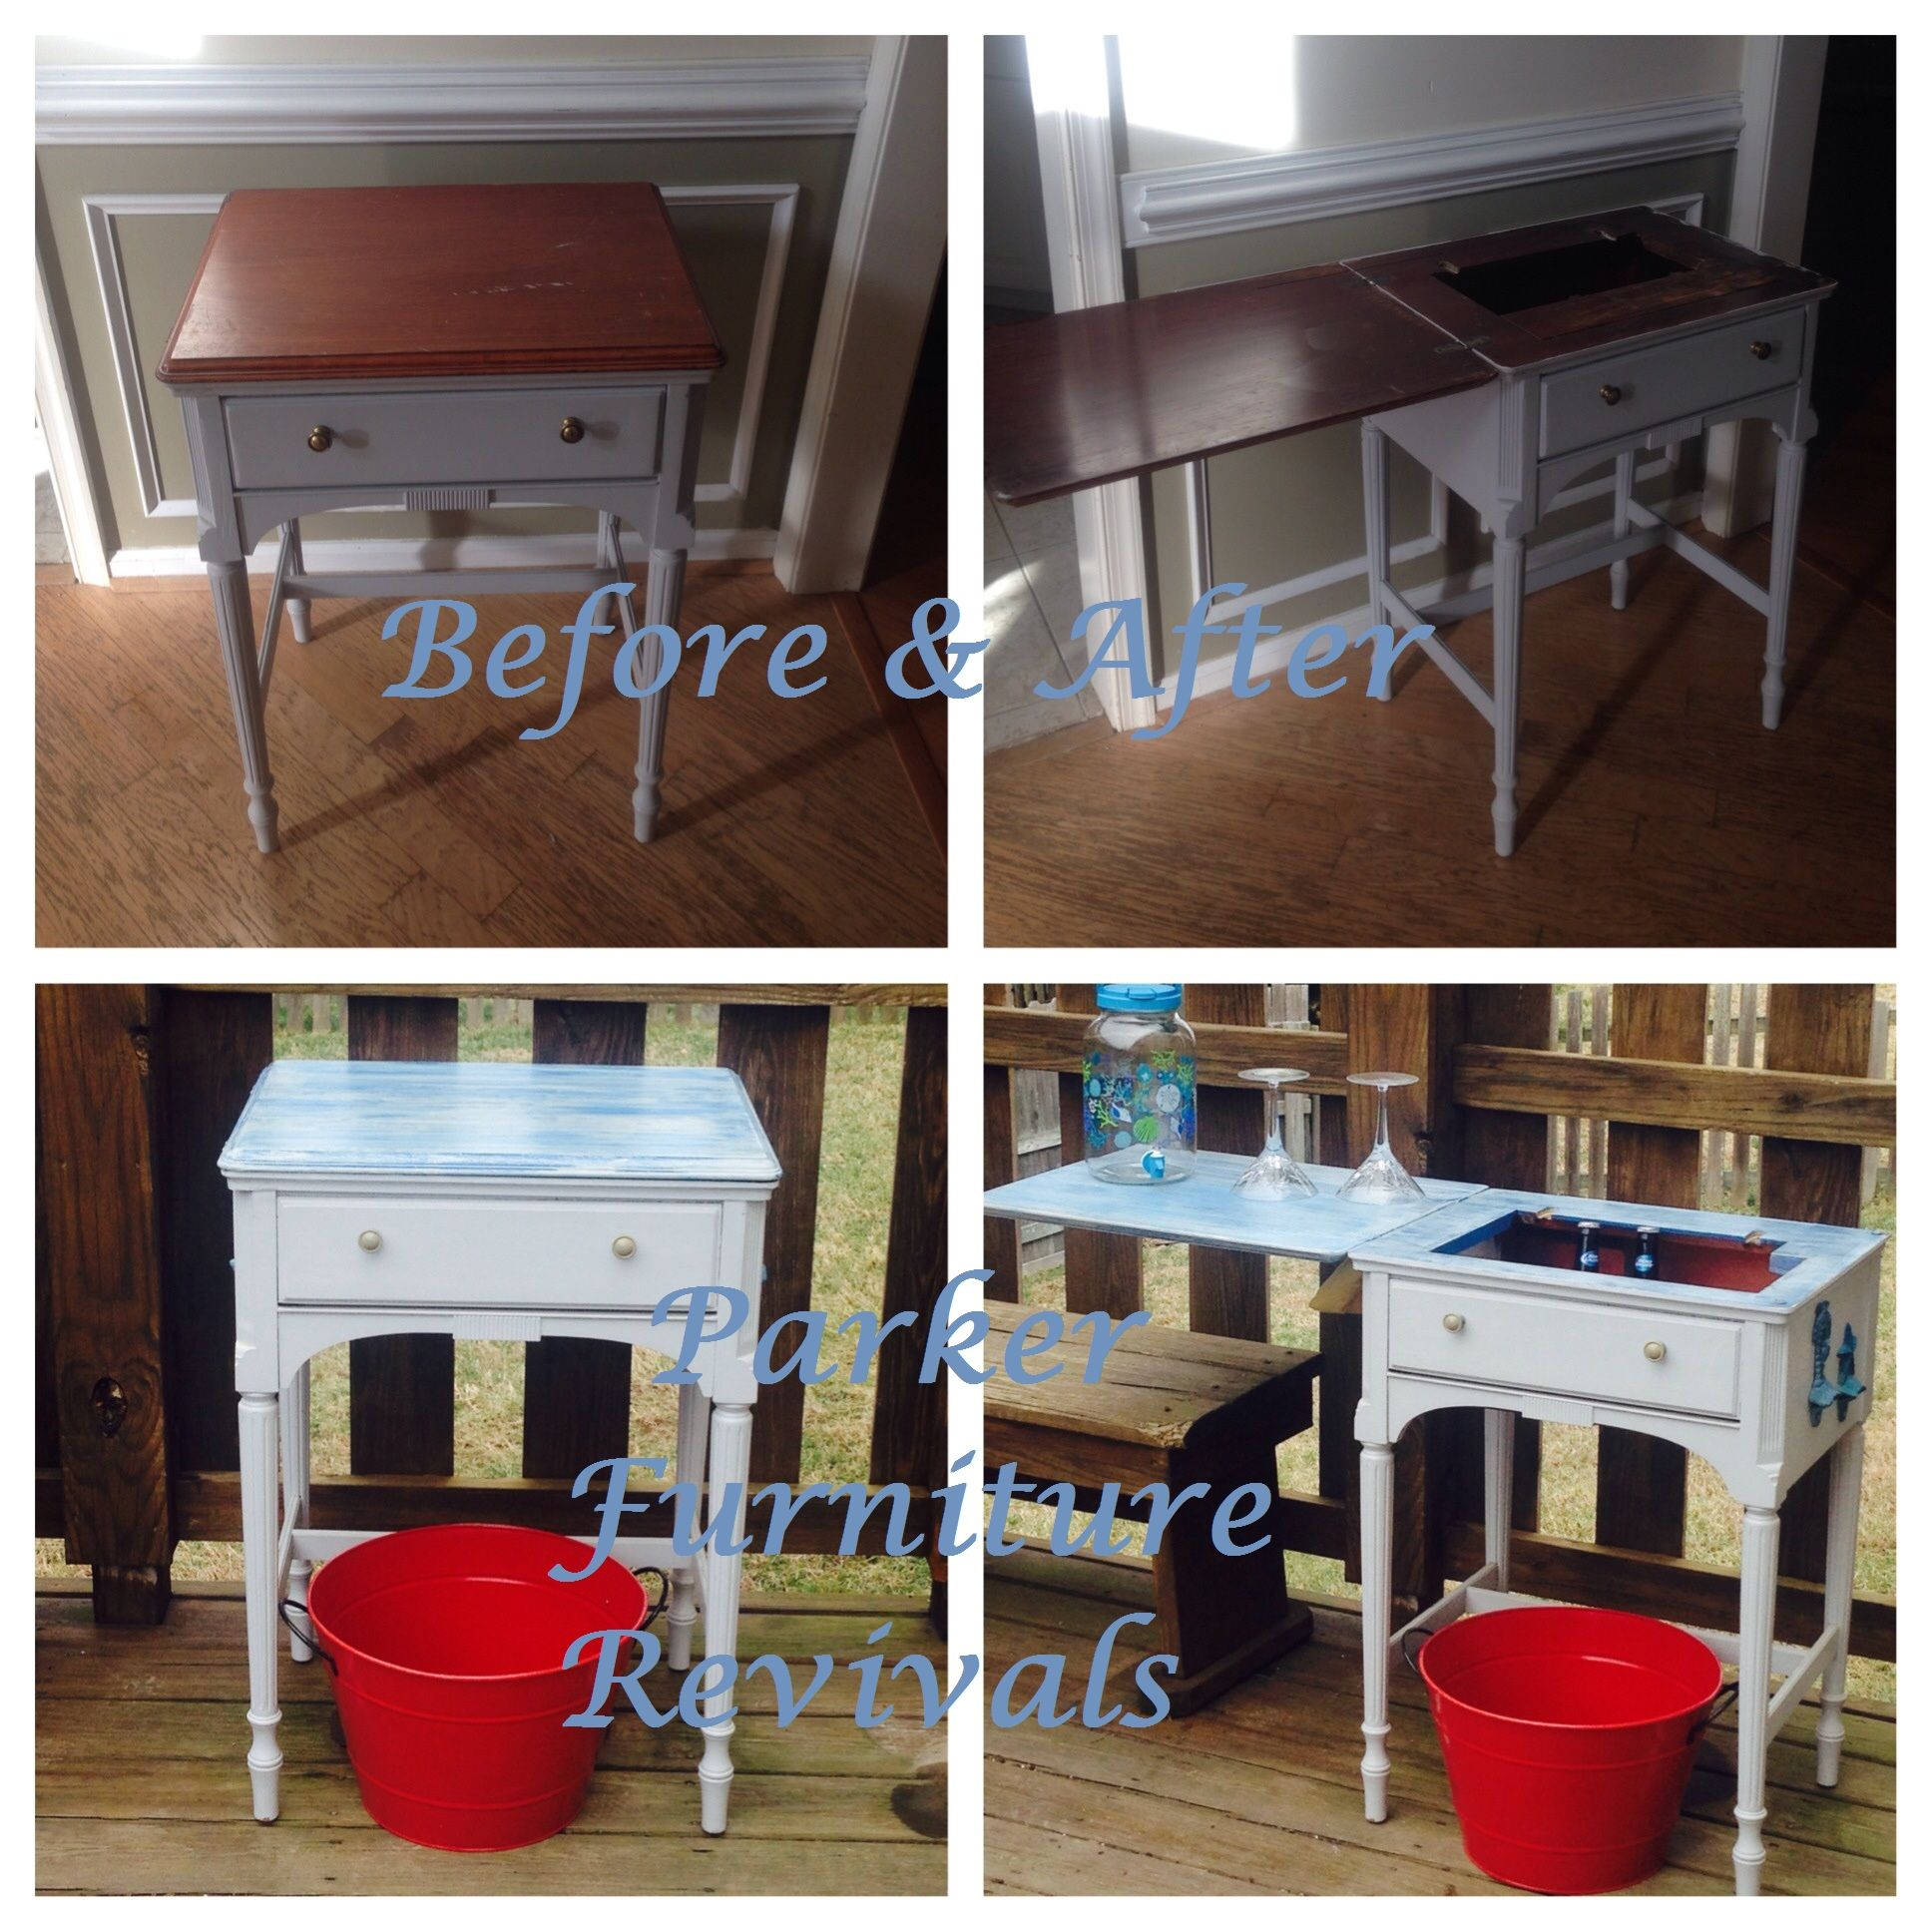 Upcycled Kitchen Cabinets: Before & After - Upcycled Sewing Cabinet